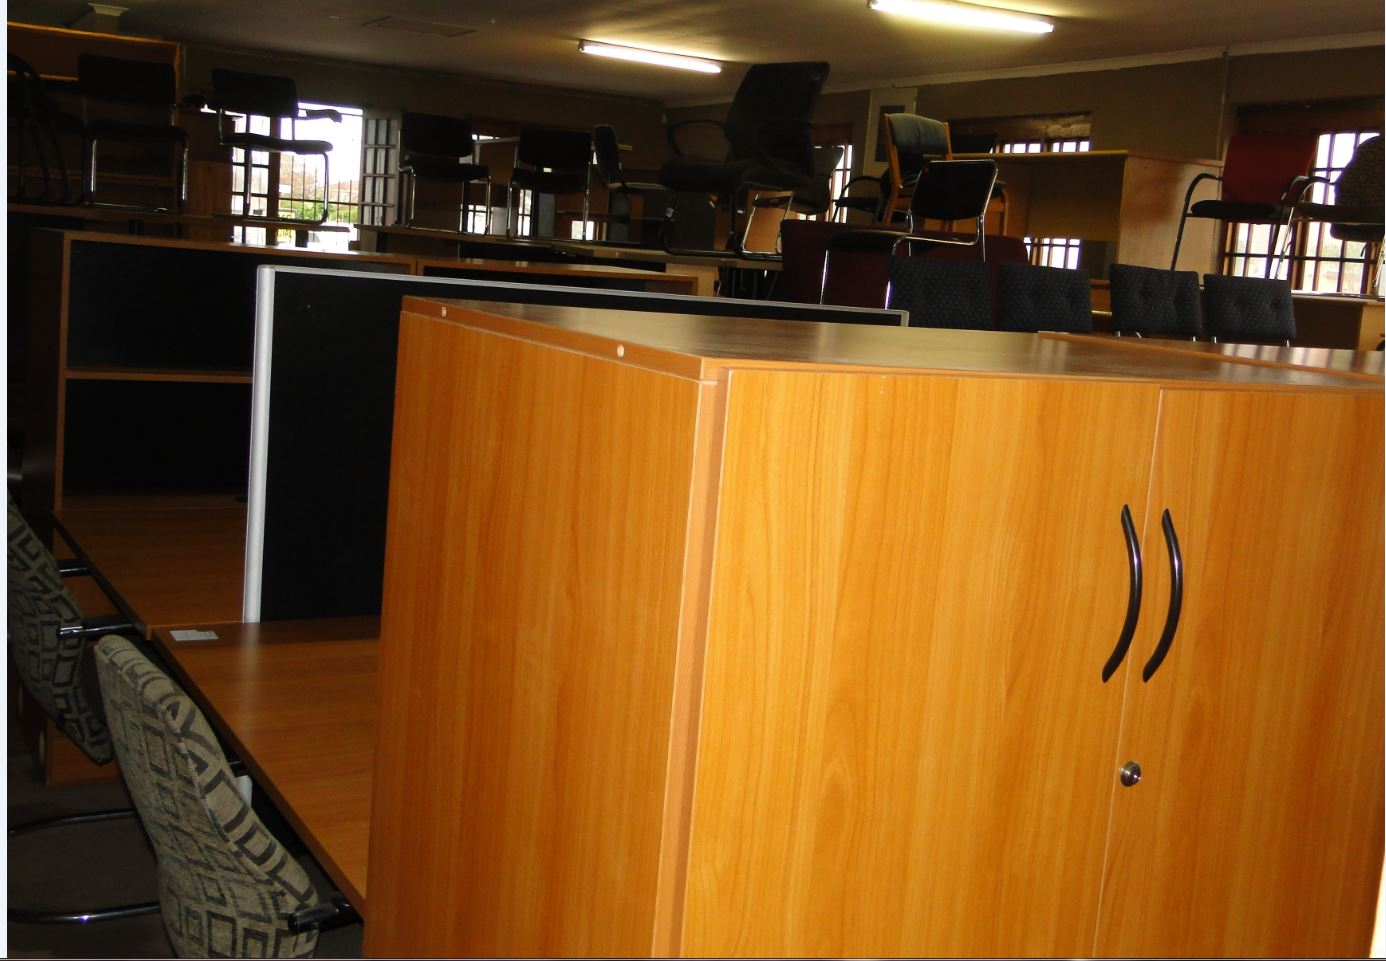 4 Workstation with 4 x 2 door Stationary cabinet 4 x 3 Drawer pedestals - R6,500 or R1800 each